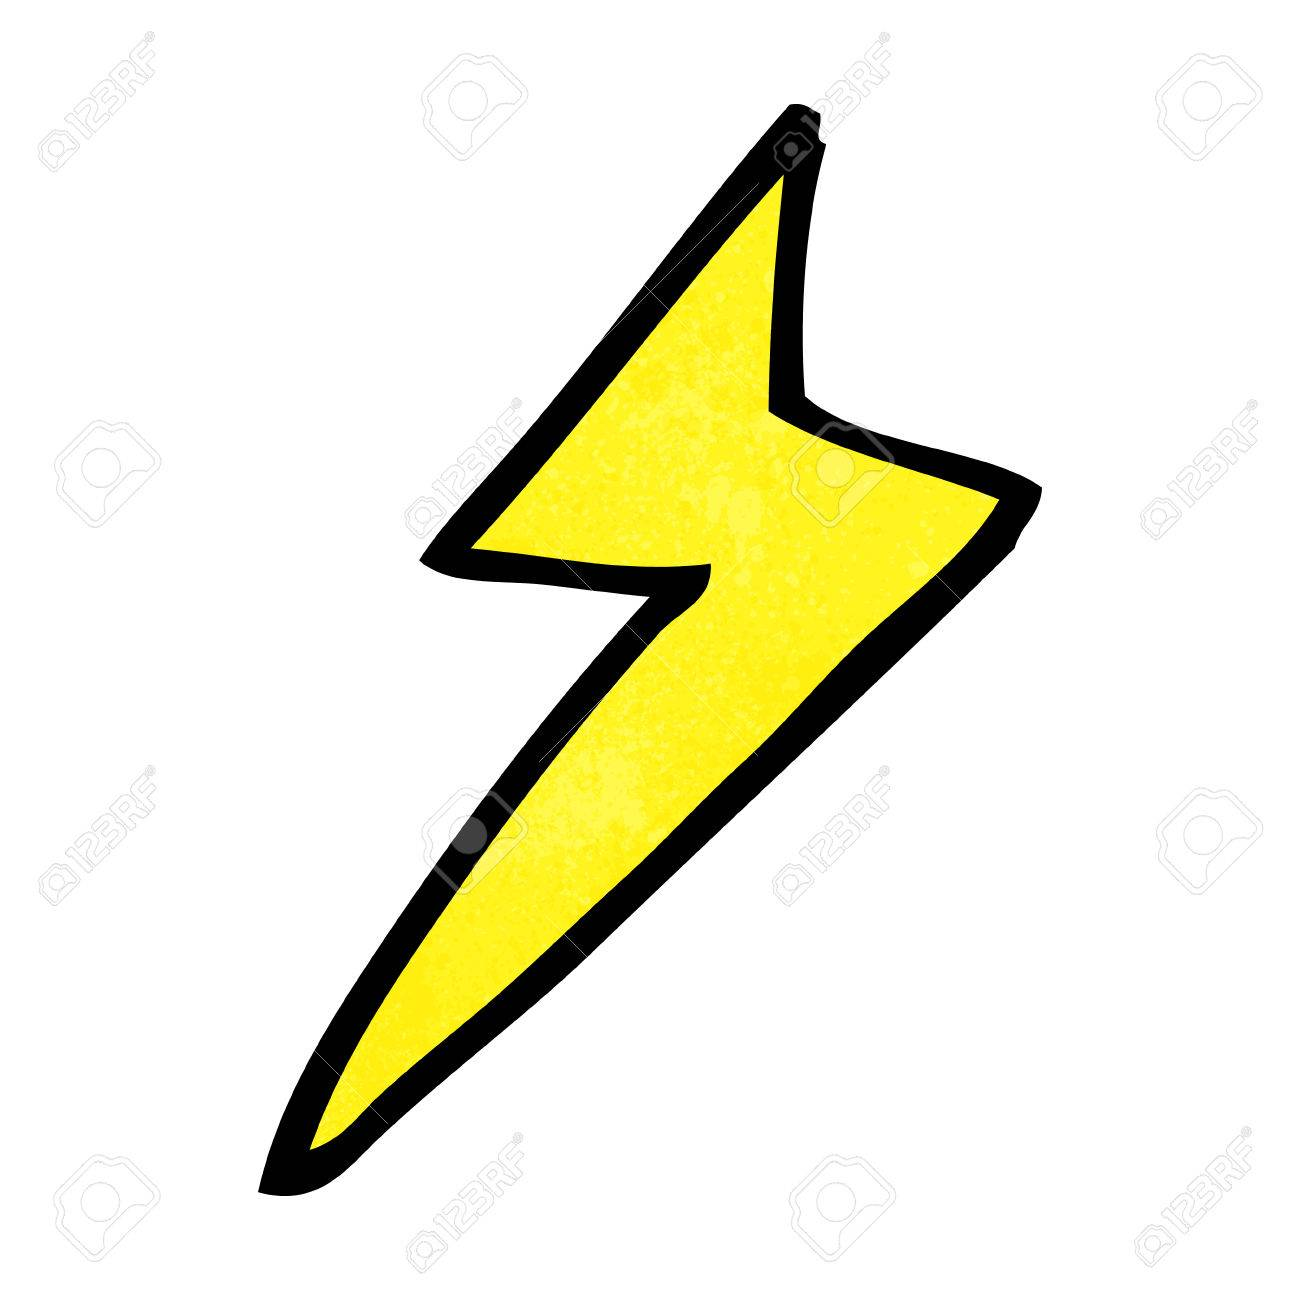 cartoon lightning bolt symbol royalty free cliparts vectors and rh 123rf com